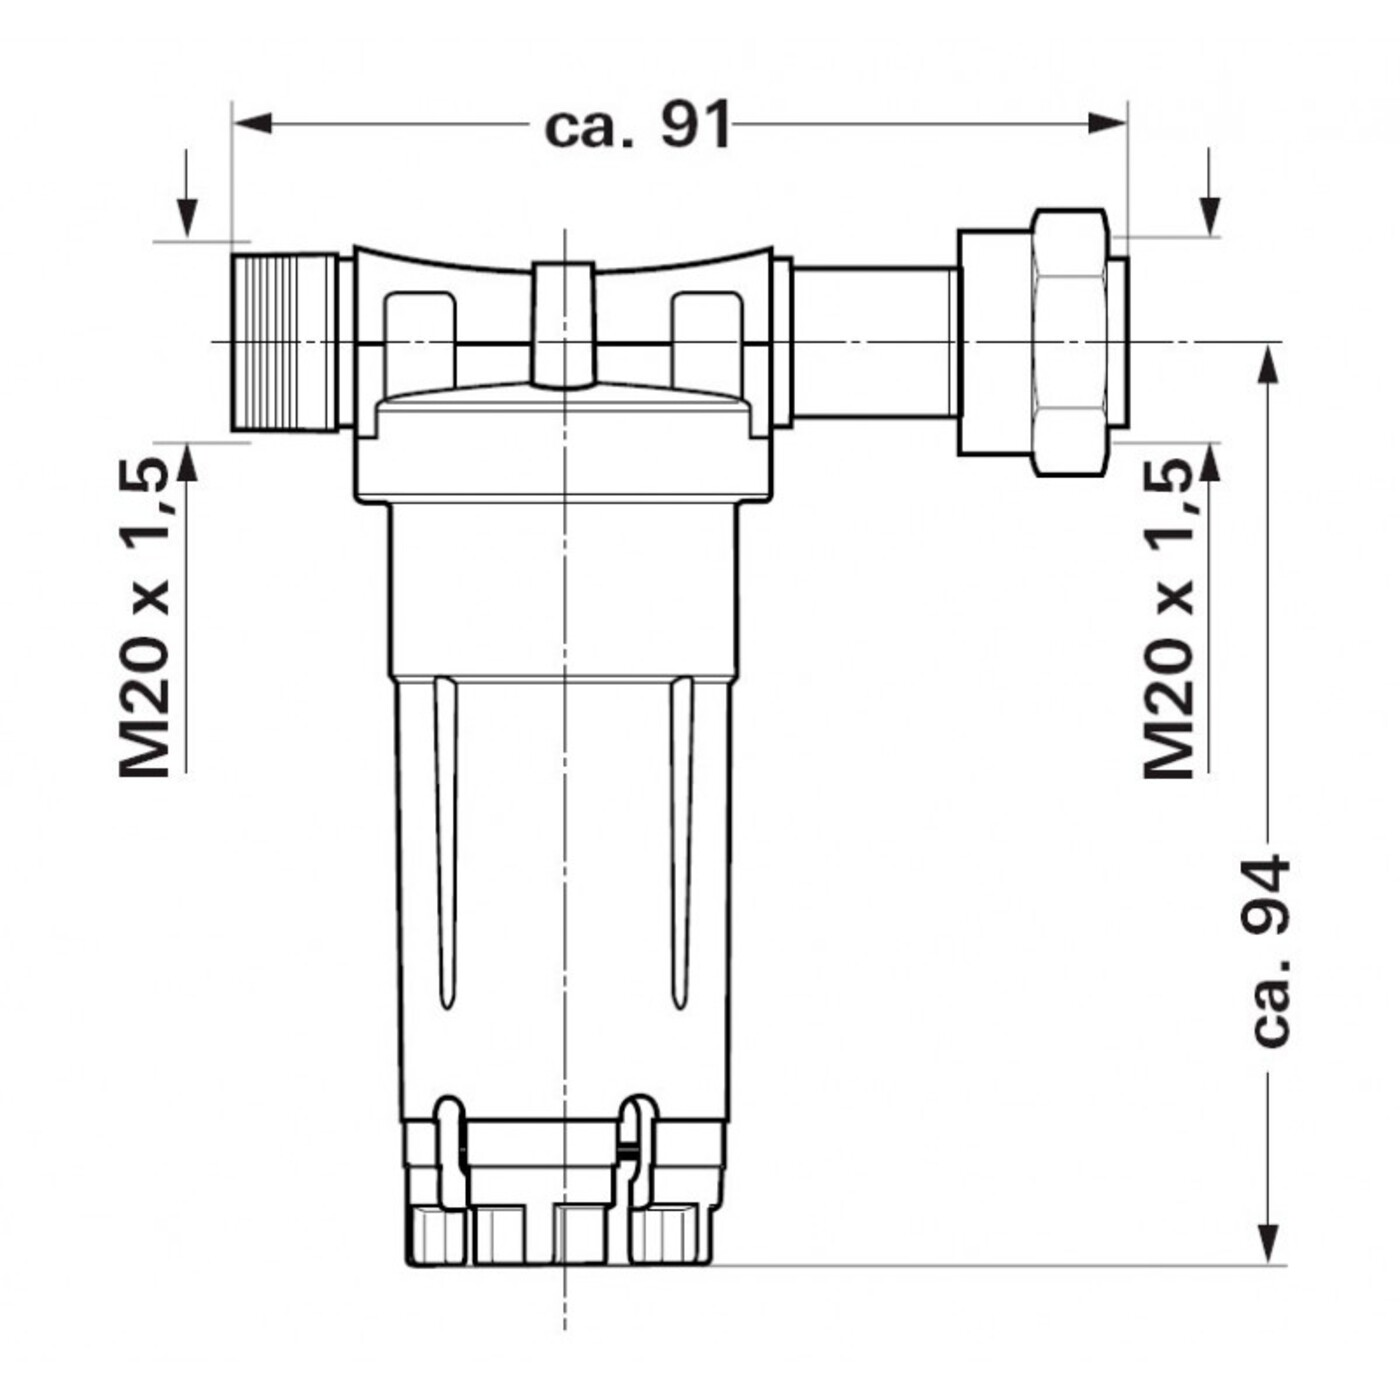 Master Link Rj45 Wiring Diagram Will Be A Thing Connection Fiat Punto Alternator Diagrams Pdf Connector